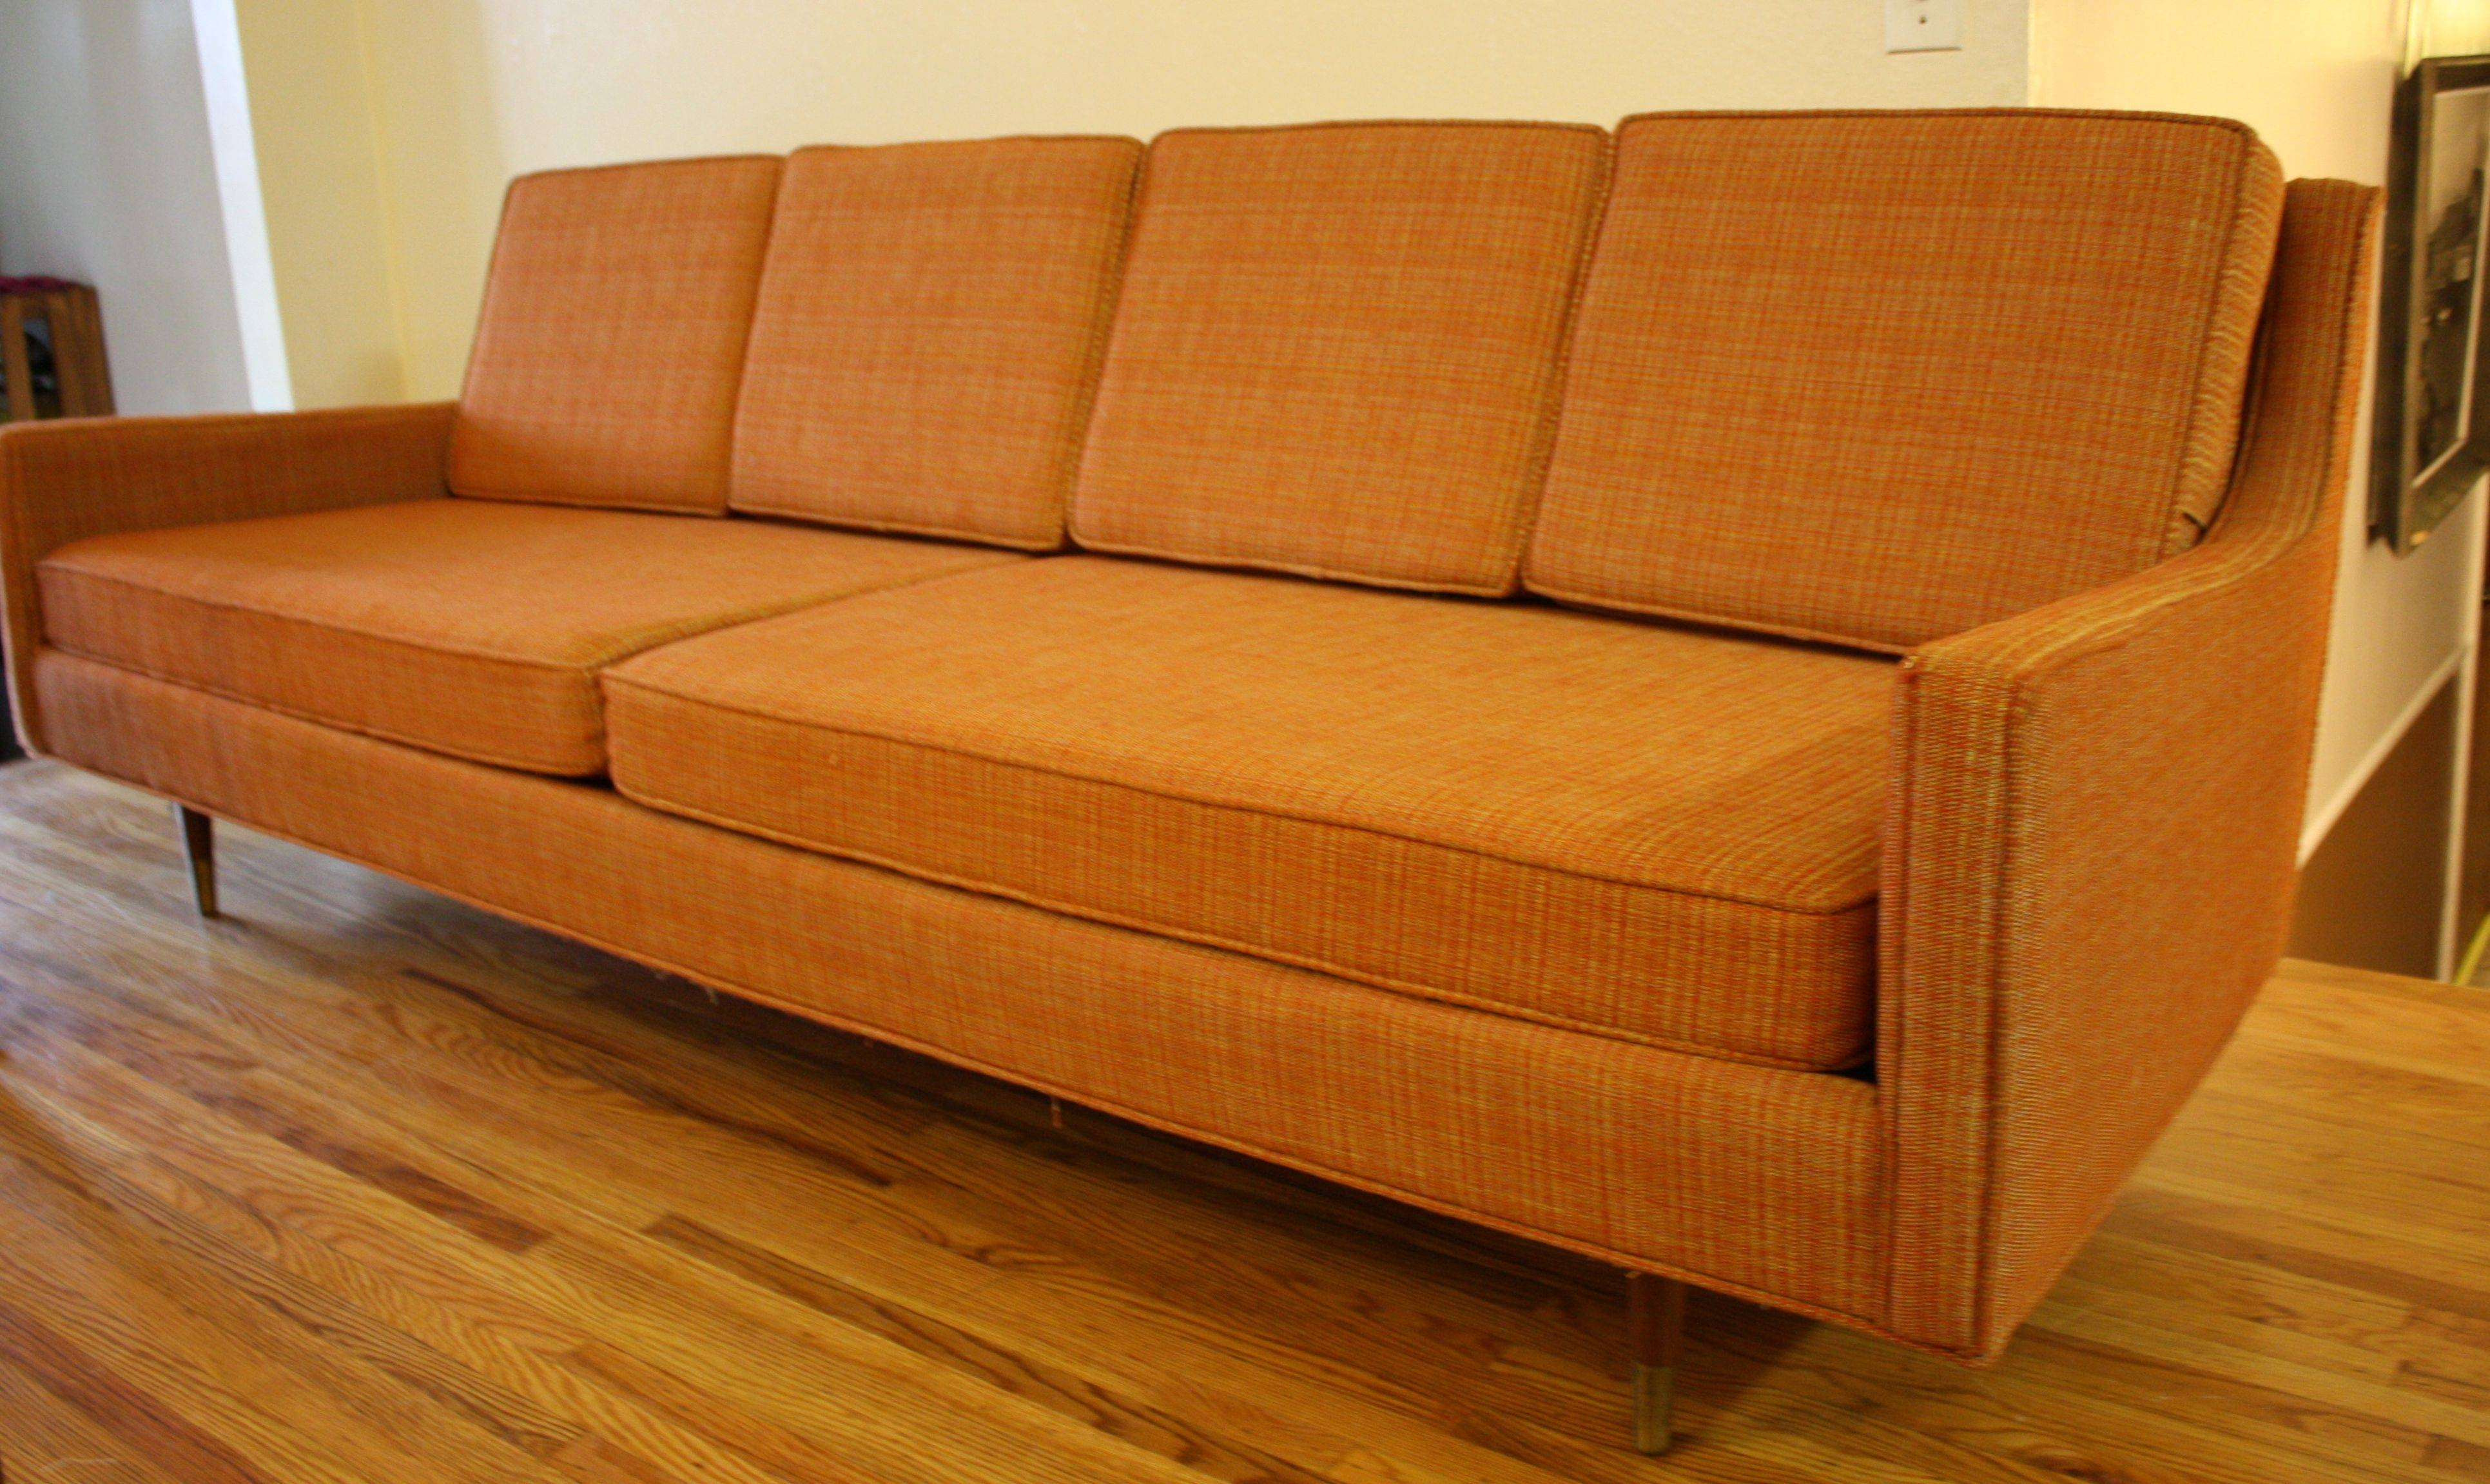 Furniture: Grey Mid Century Sofas With Wood Legs For Inspiring in Wood Legs Sofas (Image 12 of 30)